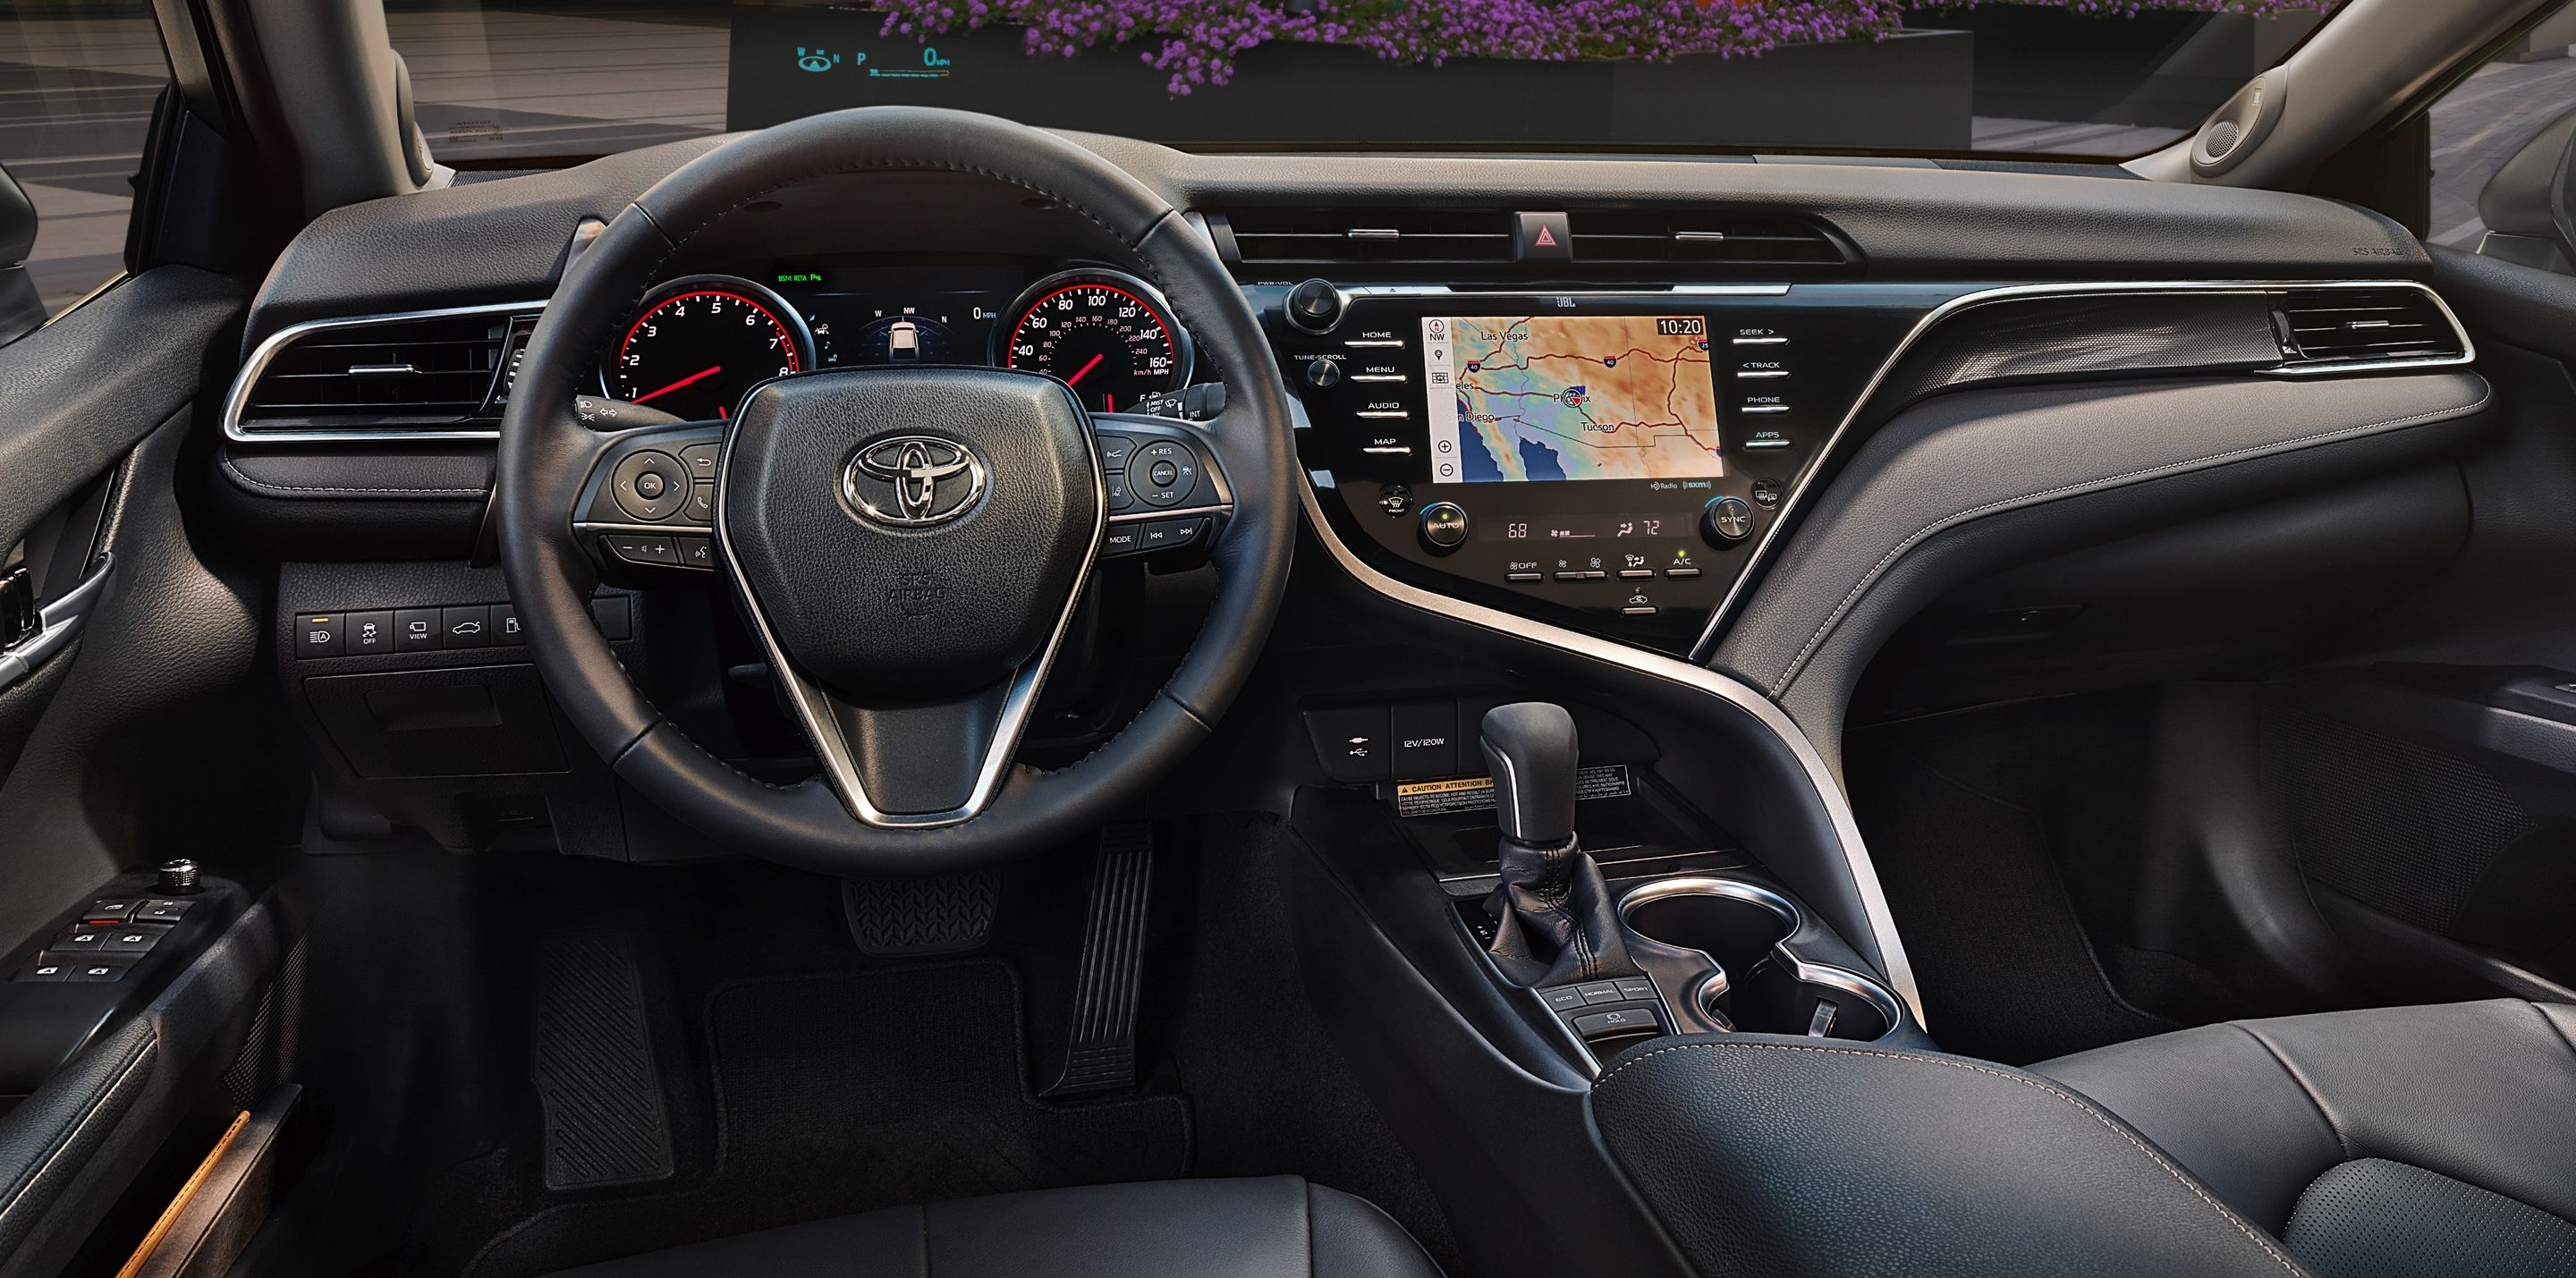 Stay Connected in the 2019 Camry!